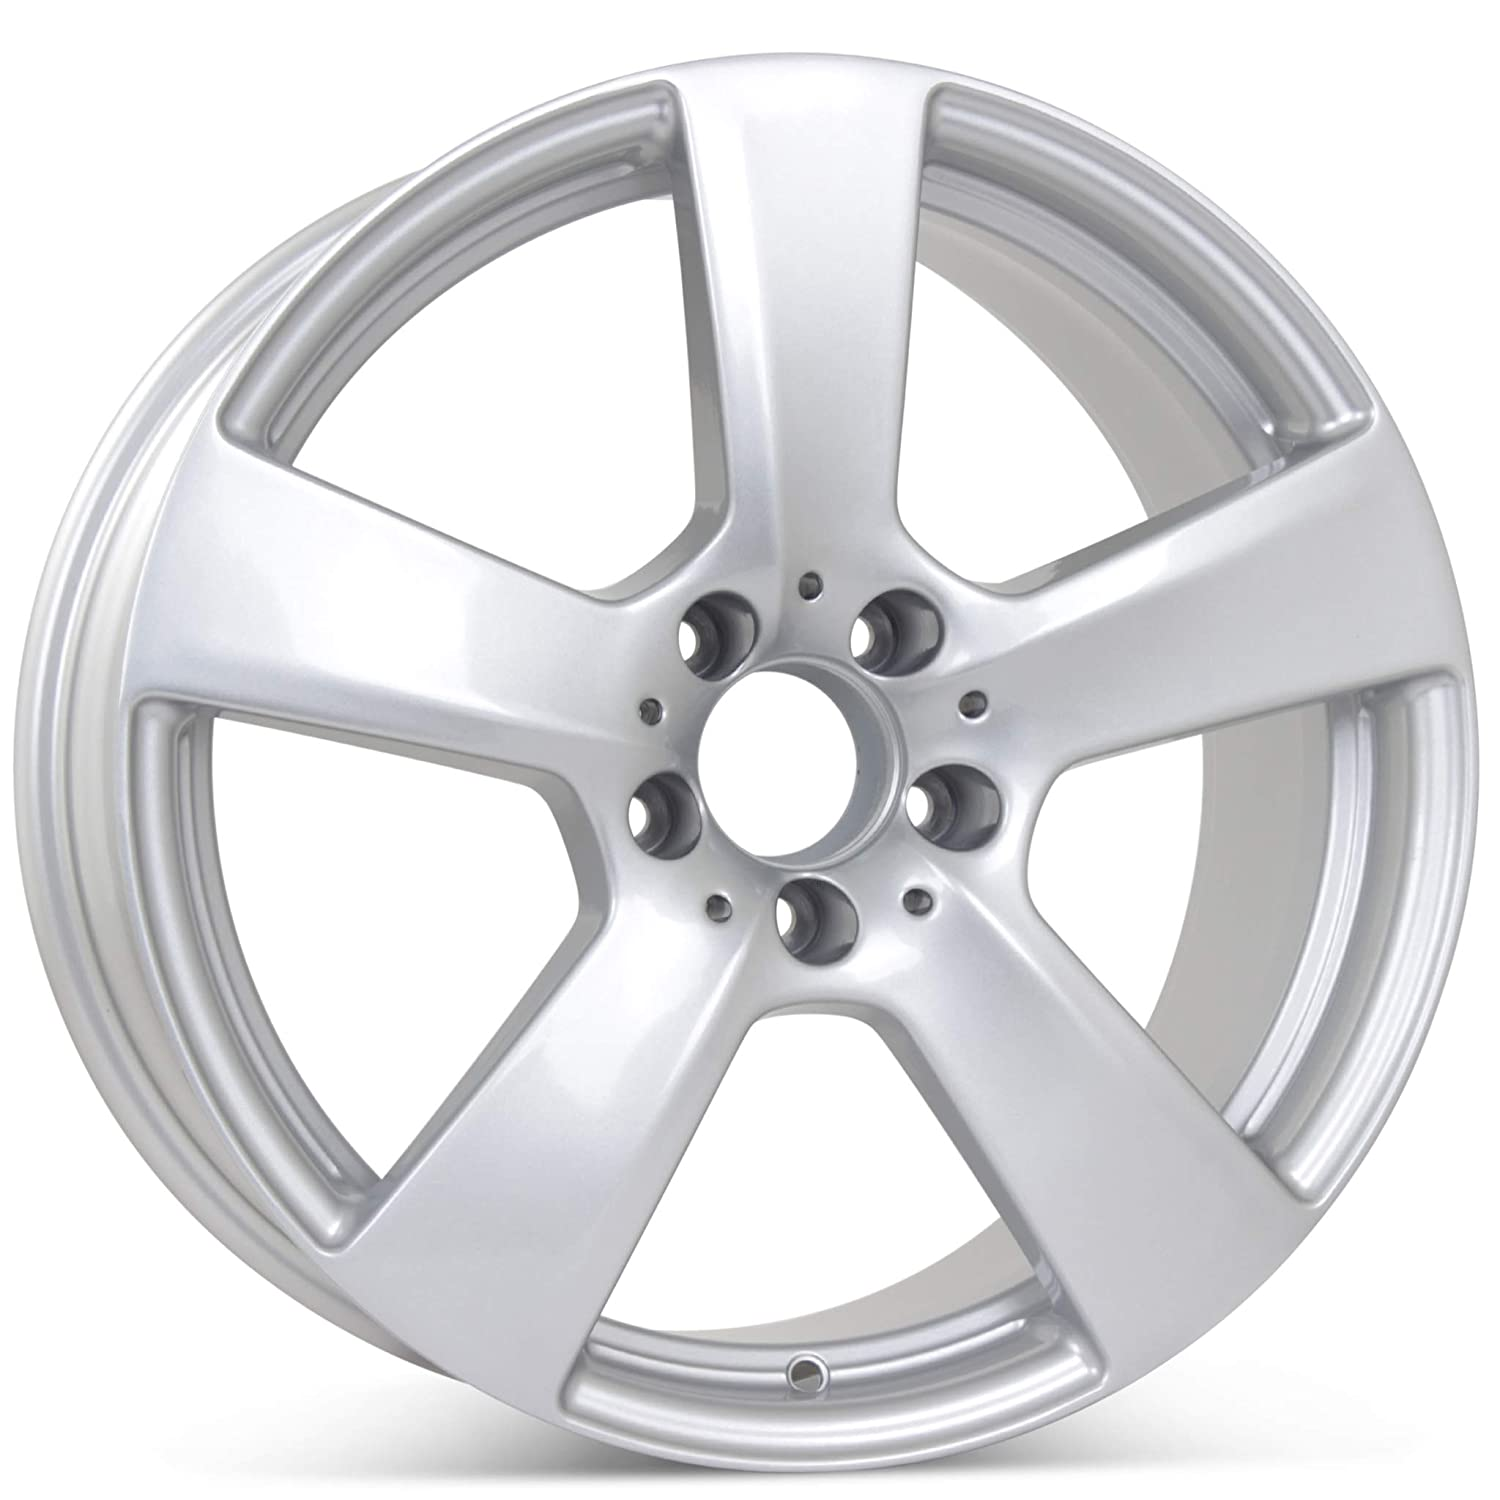 New 18 inches x 8.5 inches Alloy Replacement Front Wheel compatible with Mercedes E350 E550 2010 2011 Rim 85129